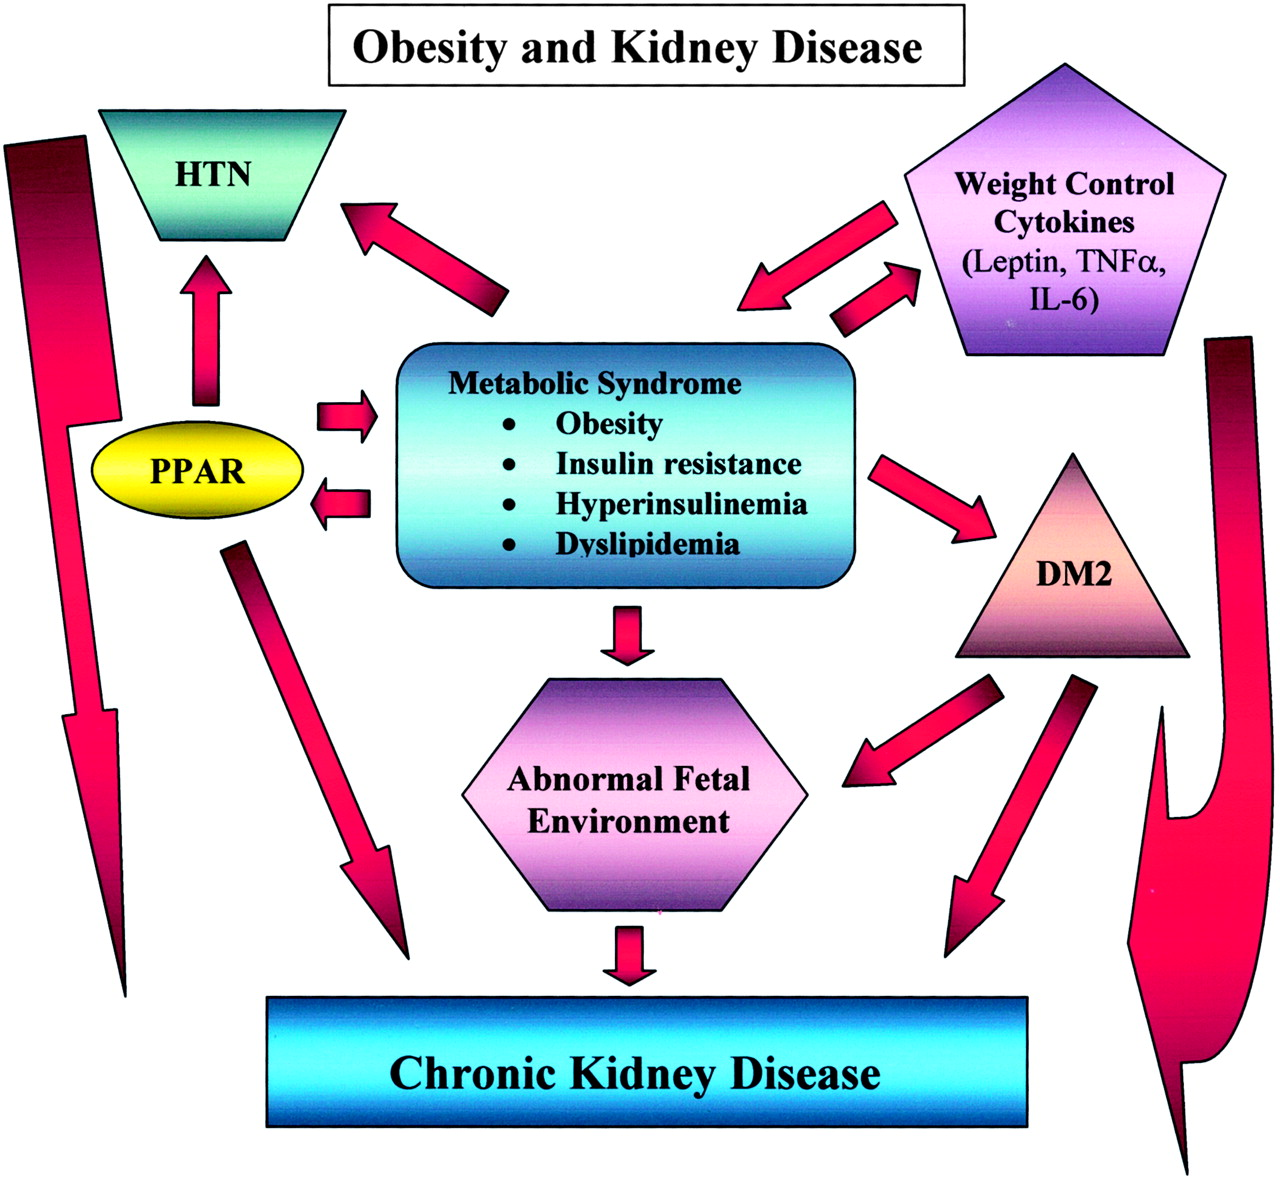 medium resolution of overview obesity what does it have to do with kidney disease american society of nephrology